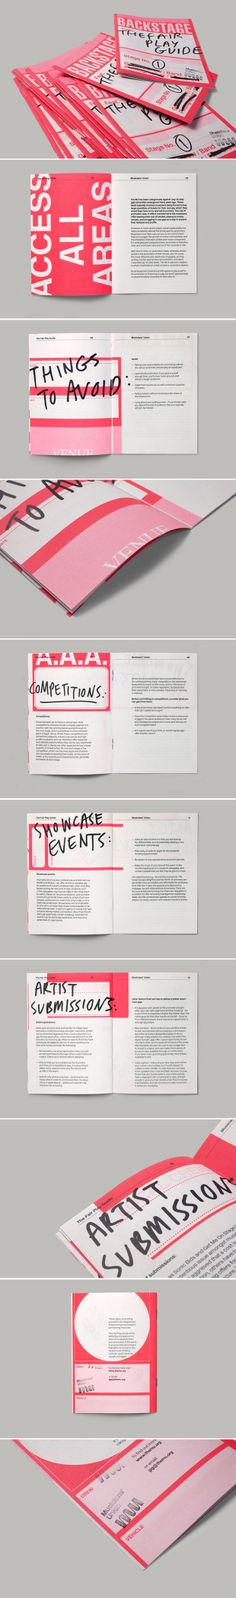 Blueprint for Counter Education POSTERS Pinterest Posts and - best of blueprint education ltd